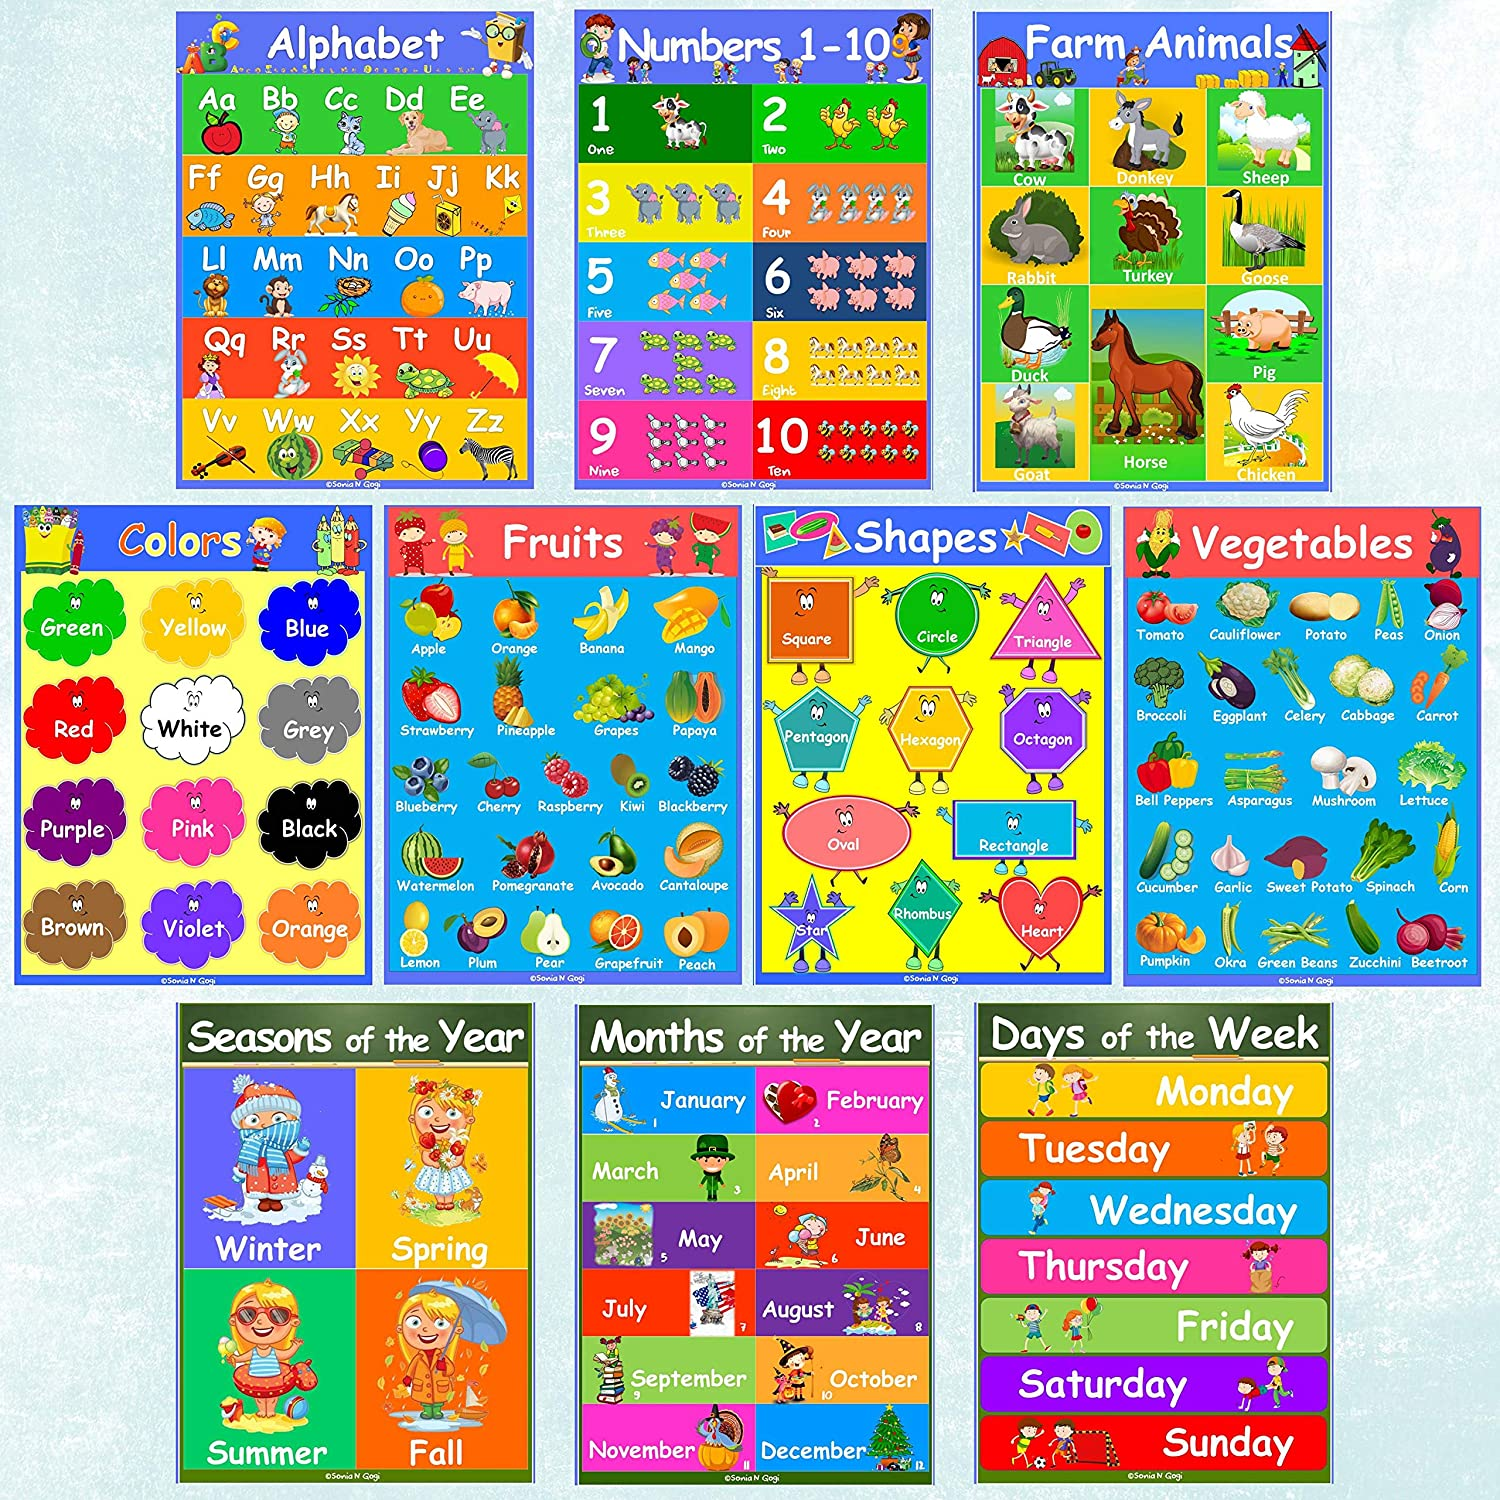 10 Laminated Kids Outlet sale feature Educational Posters Poster - Toddler Be super welcome Learning